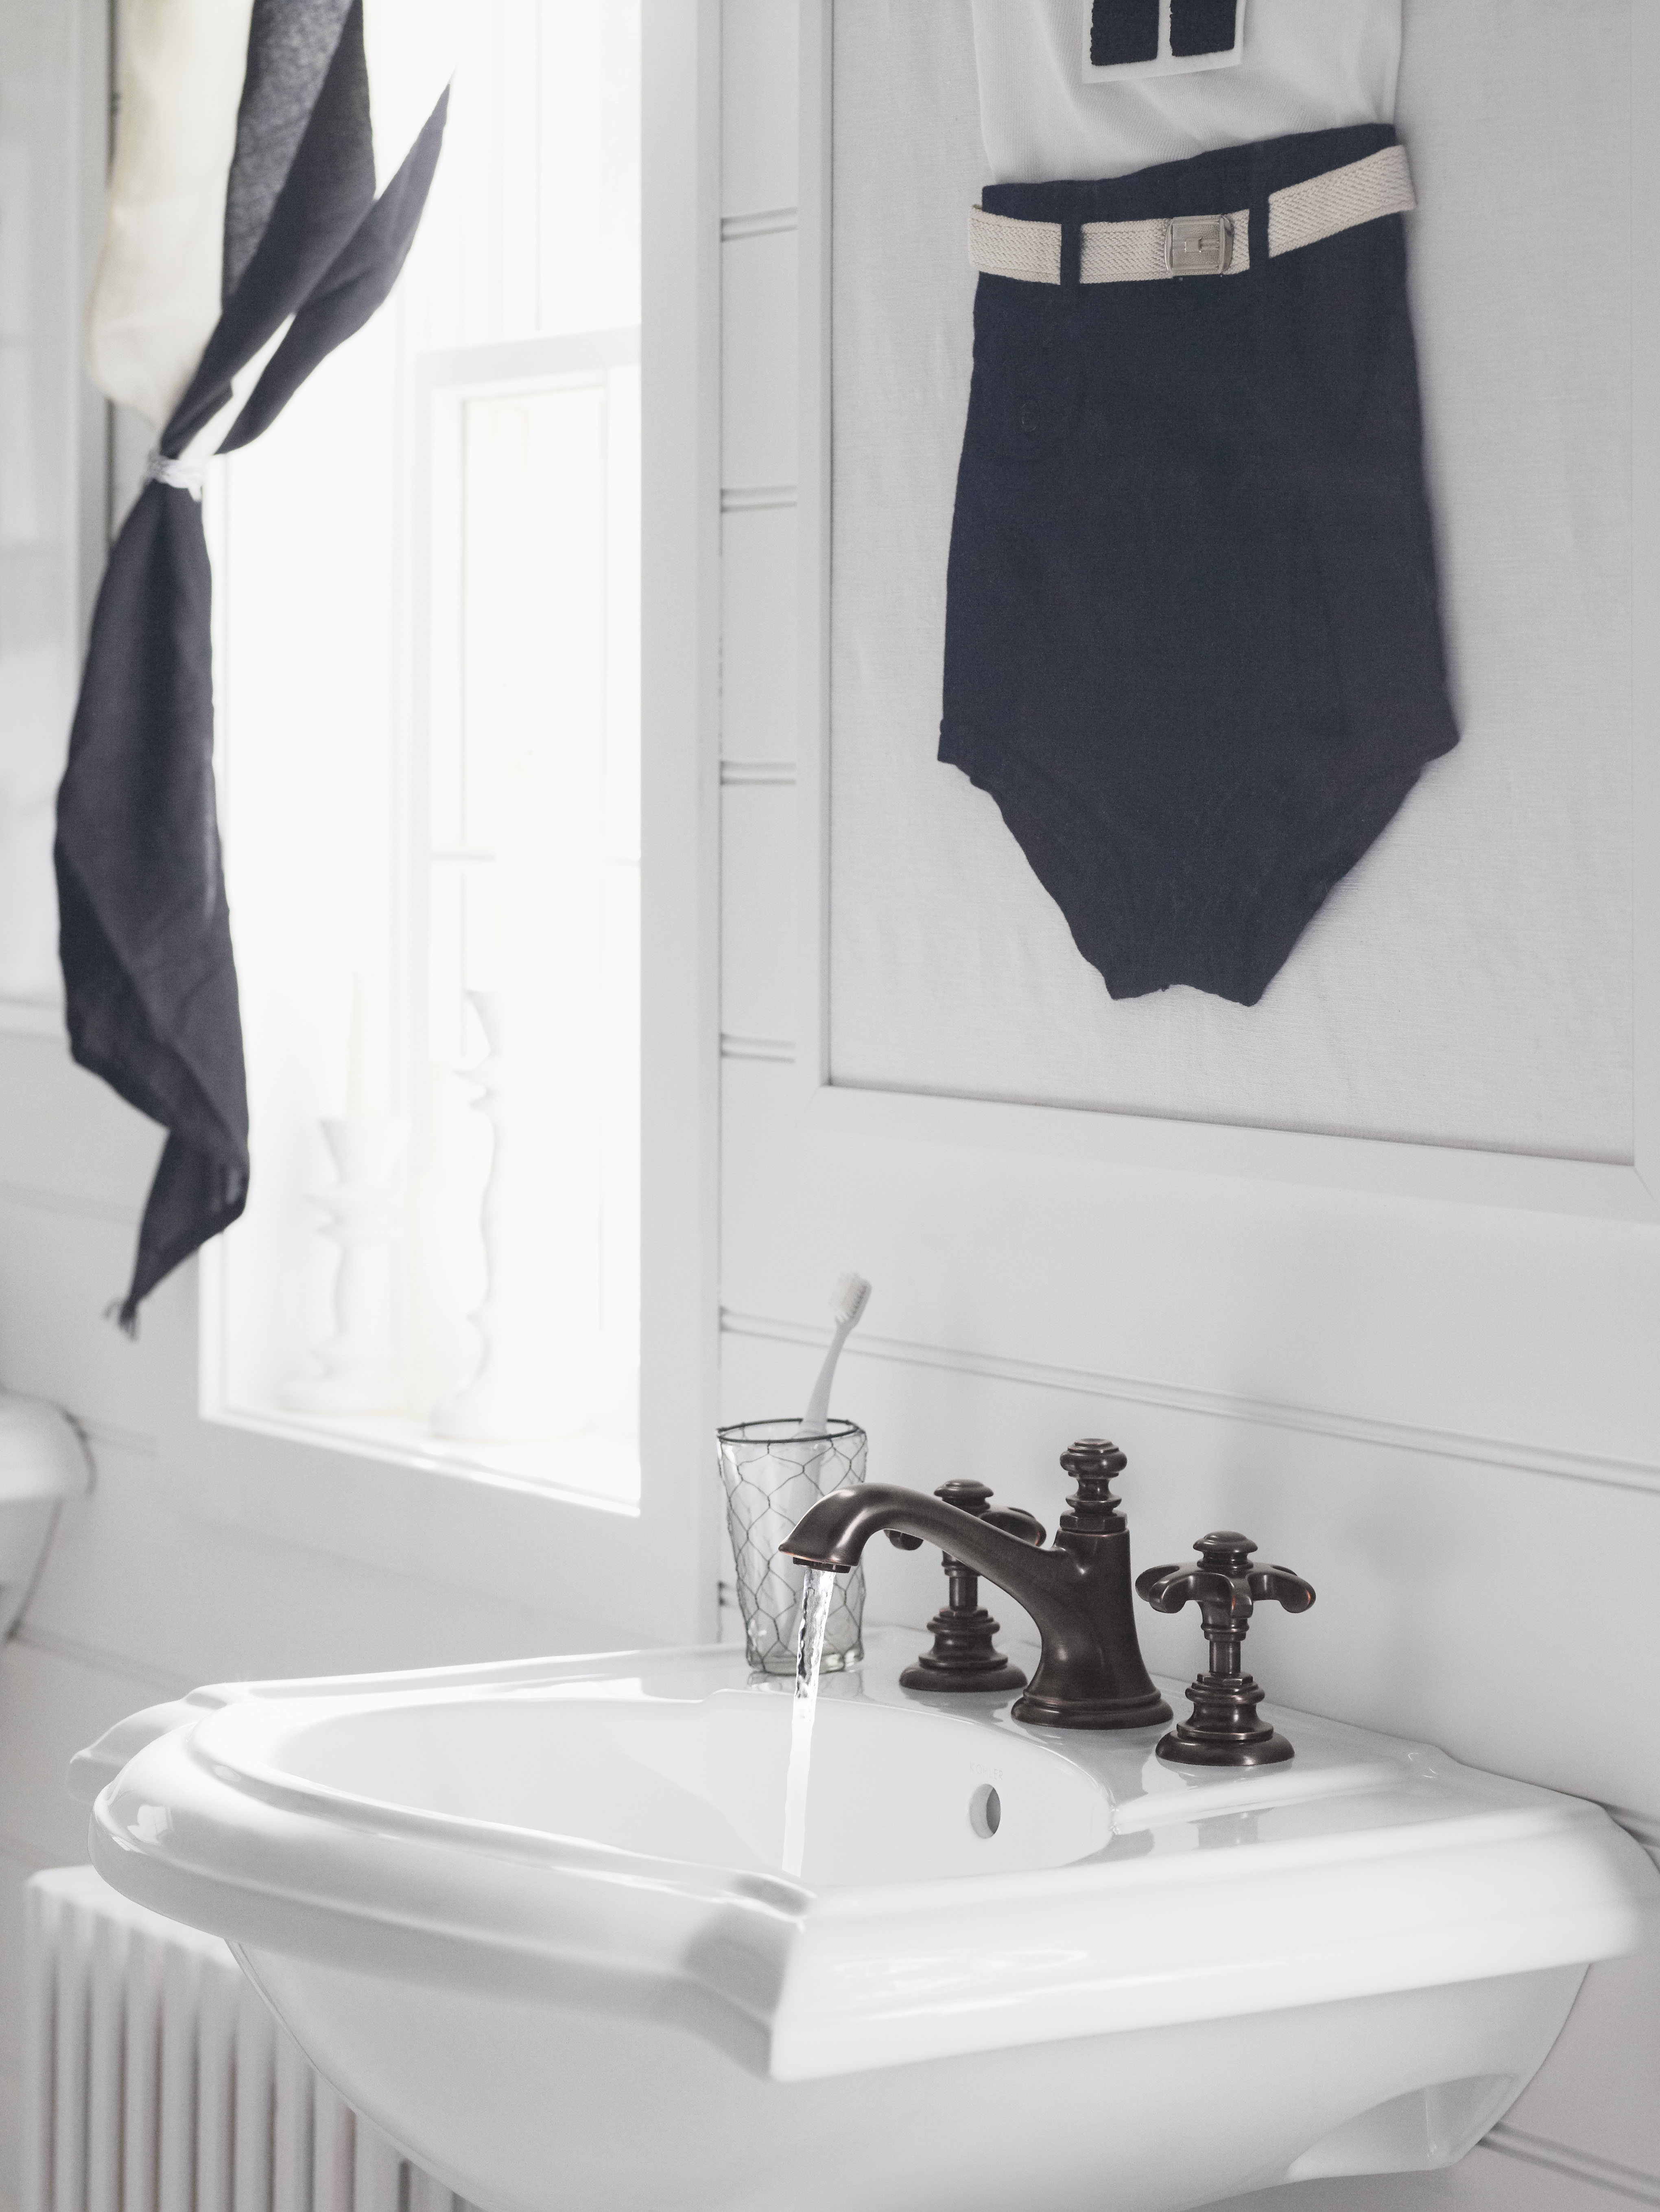 Artifacts Faucet Spout     Artifacts Faucet Handles     Devonshire Sink     The Oil-rubbed Bronze finish on this traditional faucet adds to the simplicity of this color palette, while the vintage-inspired details further the cozy cottage appeal.